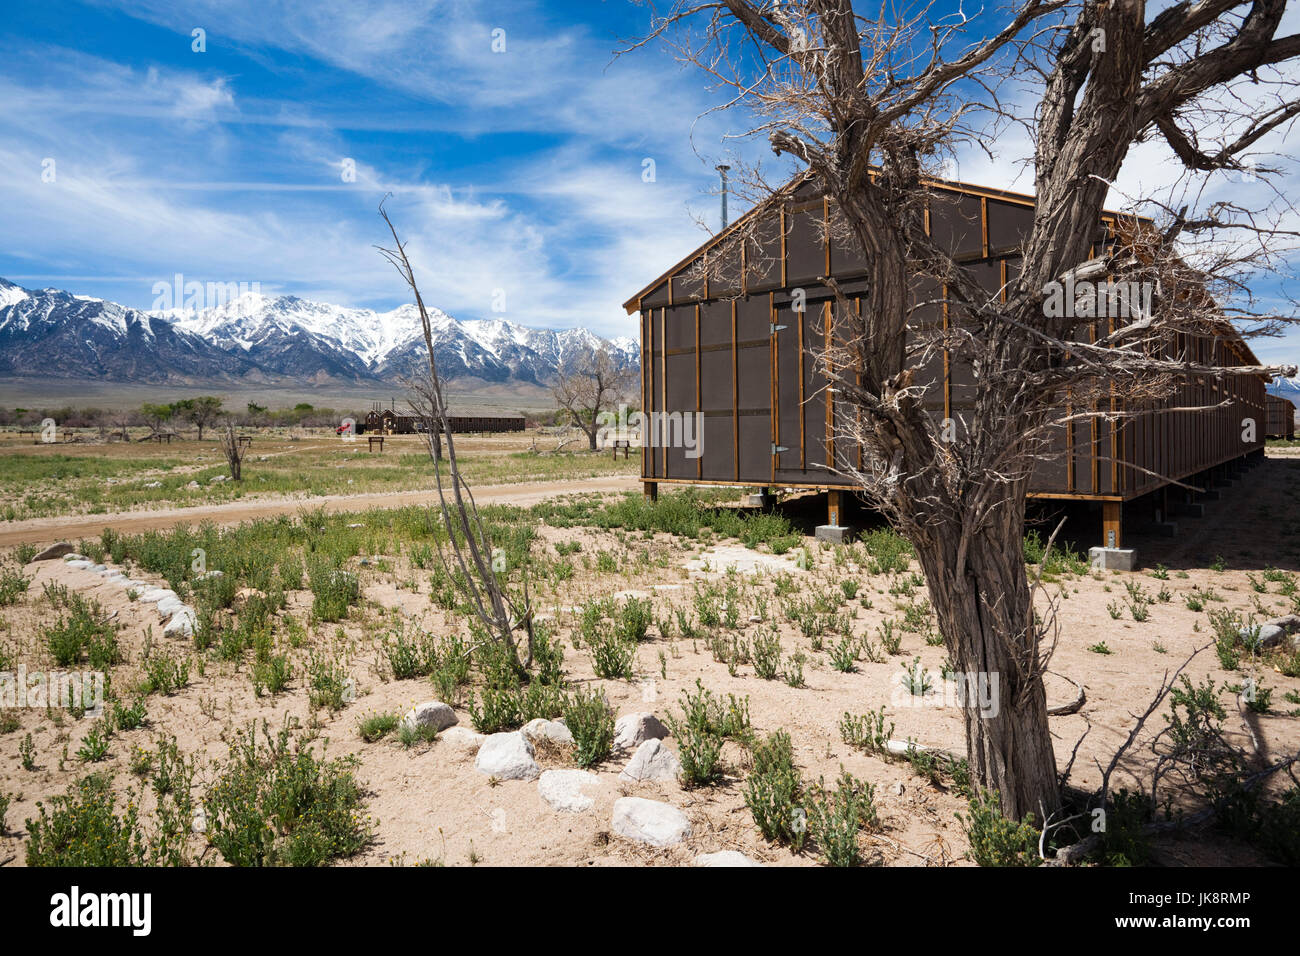 USA, California, Eastern Sierra Nevada Area, Independence, Manzanar National Historic Site, site of World War Two - Stock Image